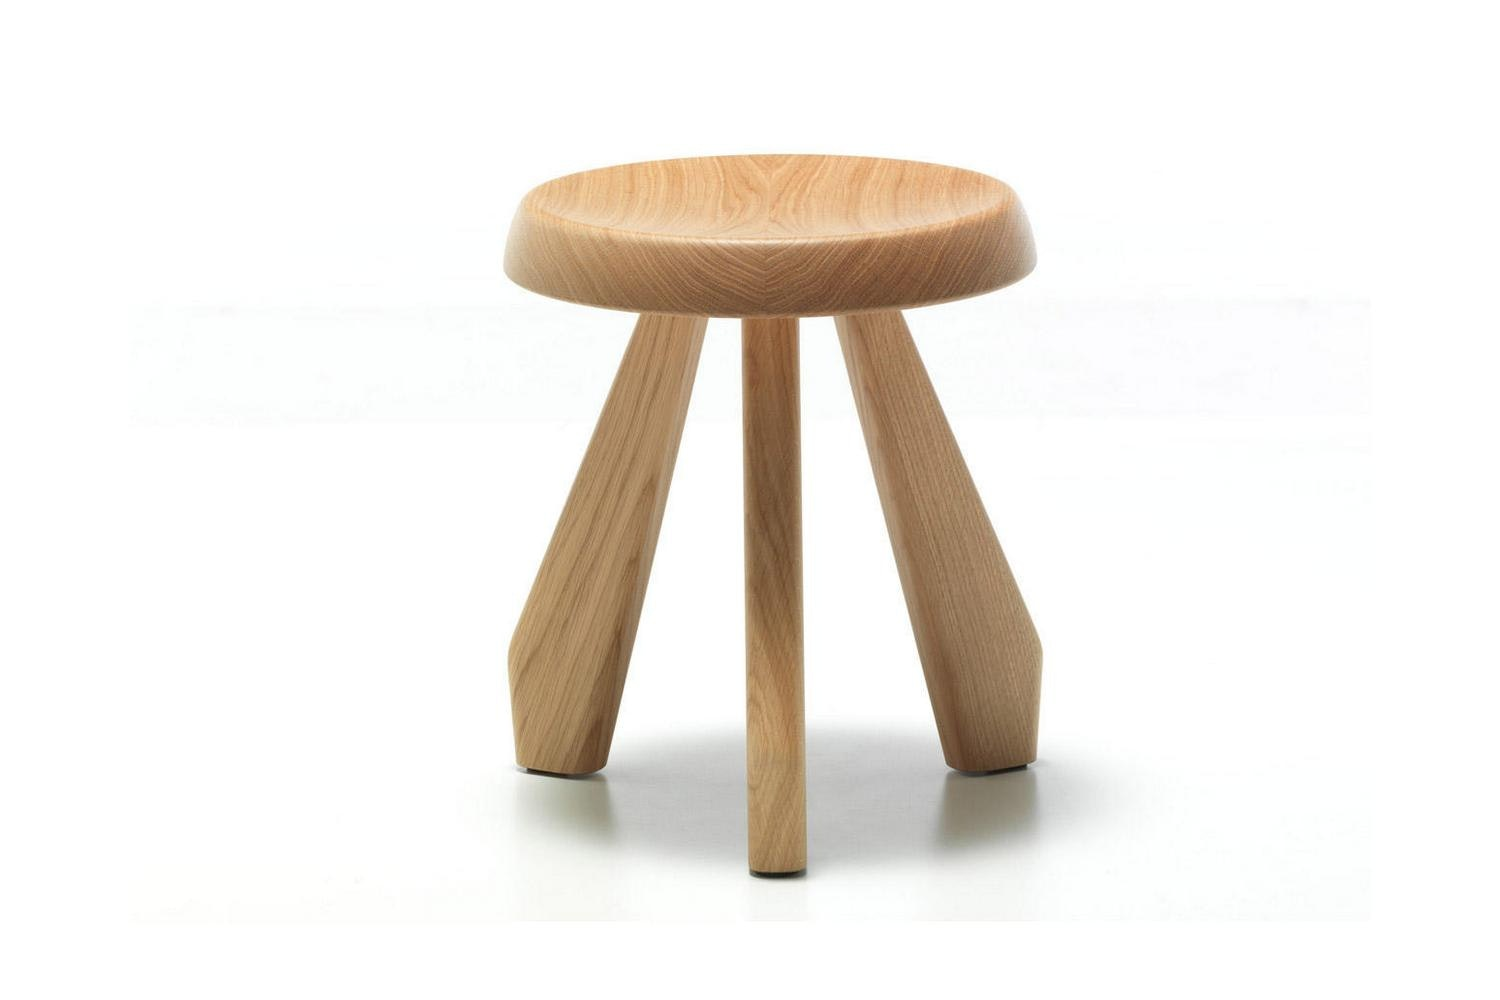 523 Tabouret Meribel Stool by Charlotte Perriand for Cassina